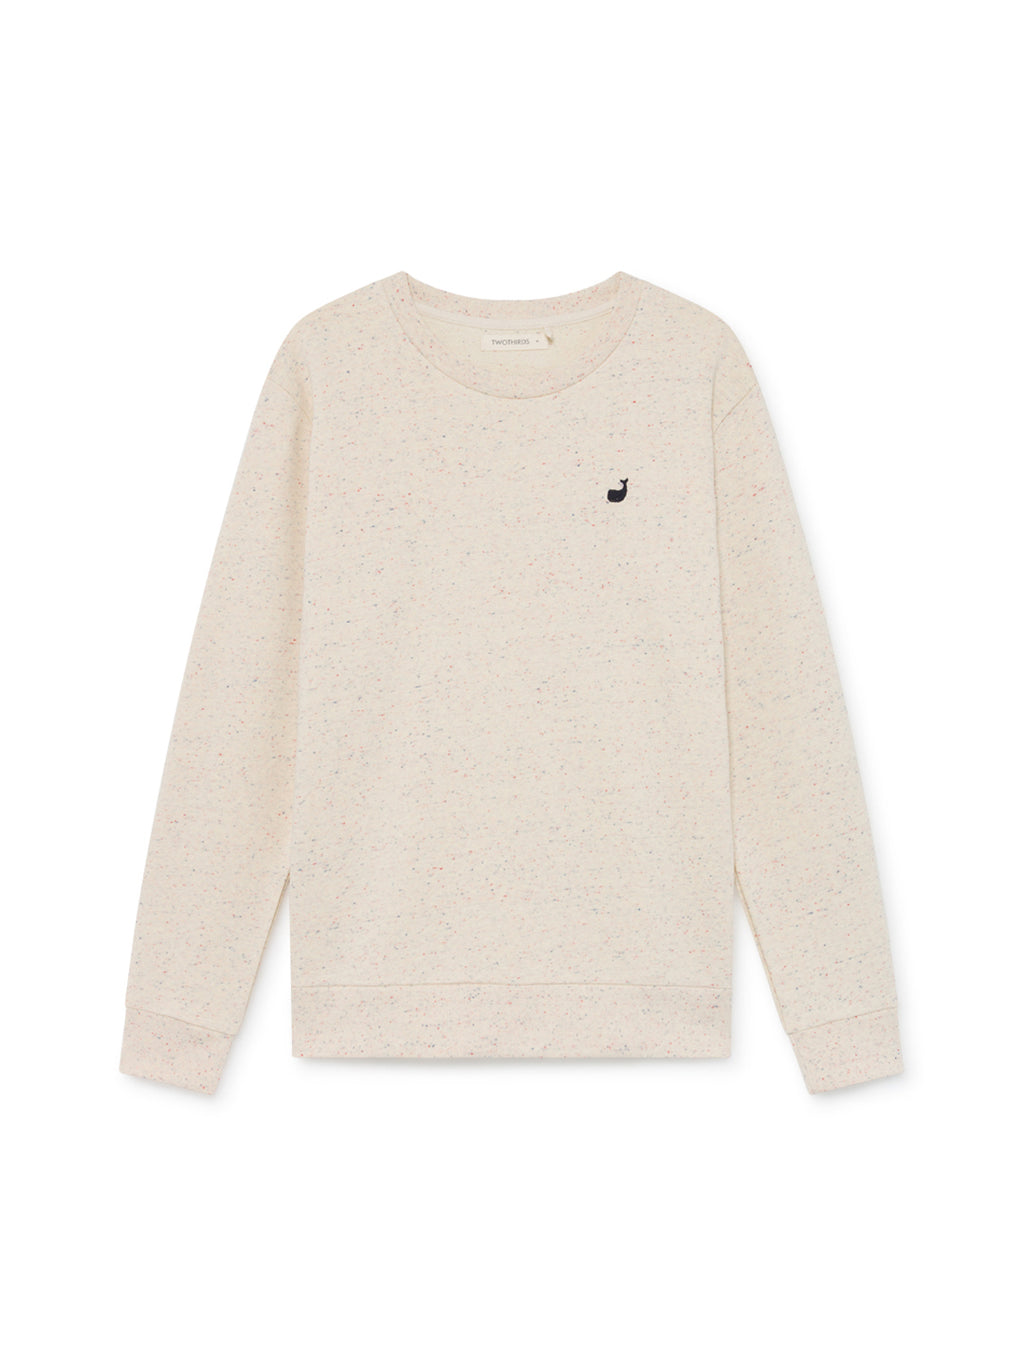 TWOTHIRDS Mens Sweat: Navarino - Ecrue front